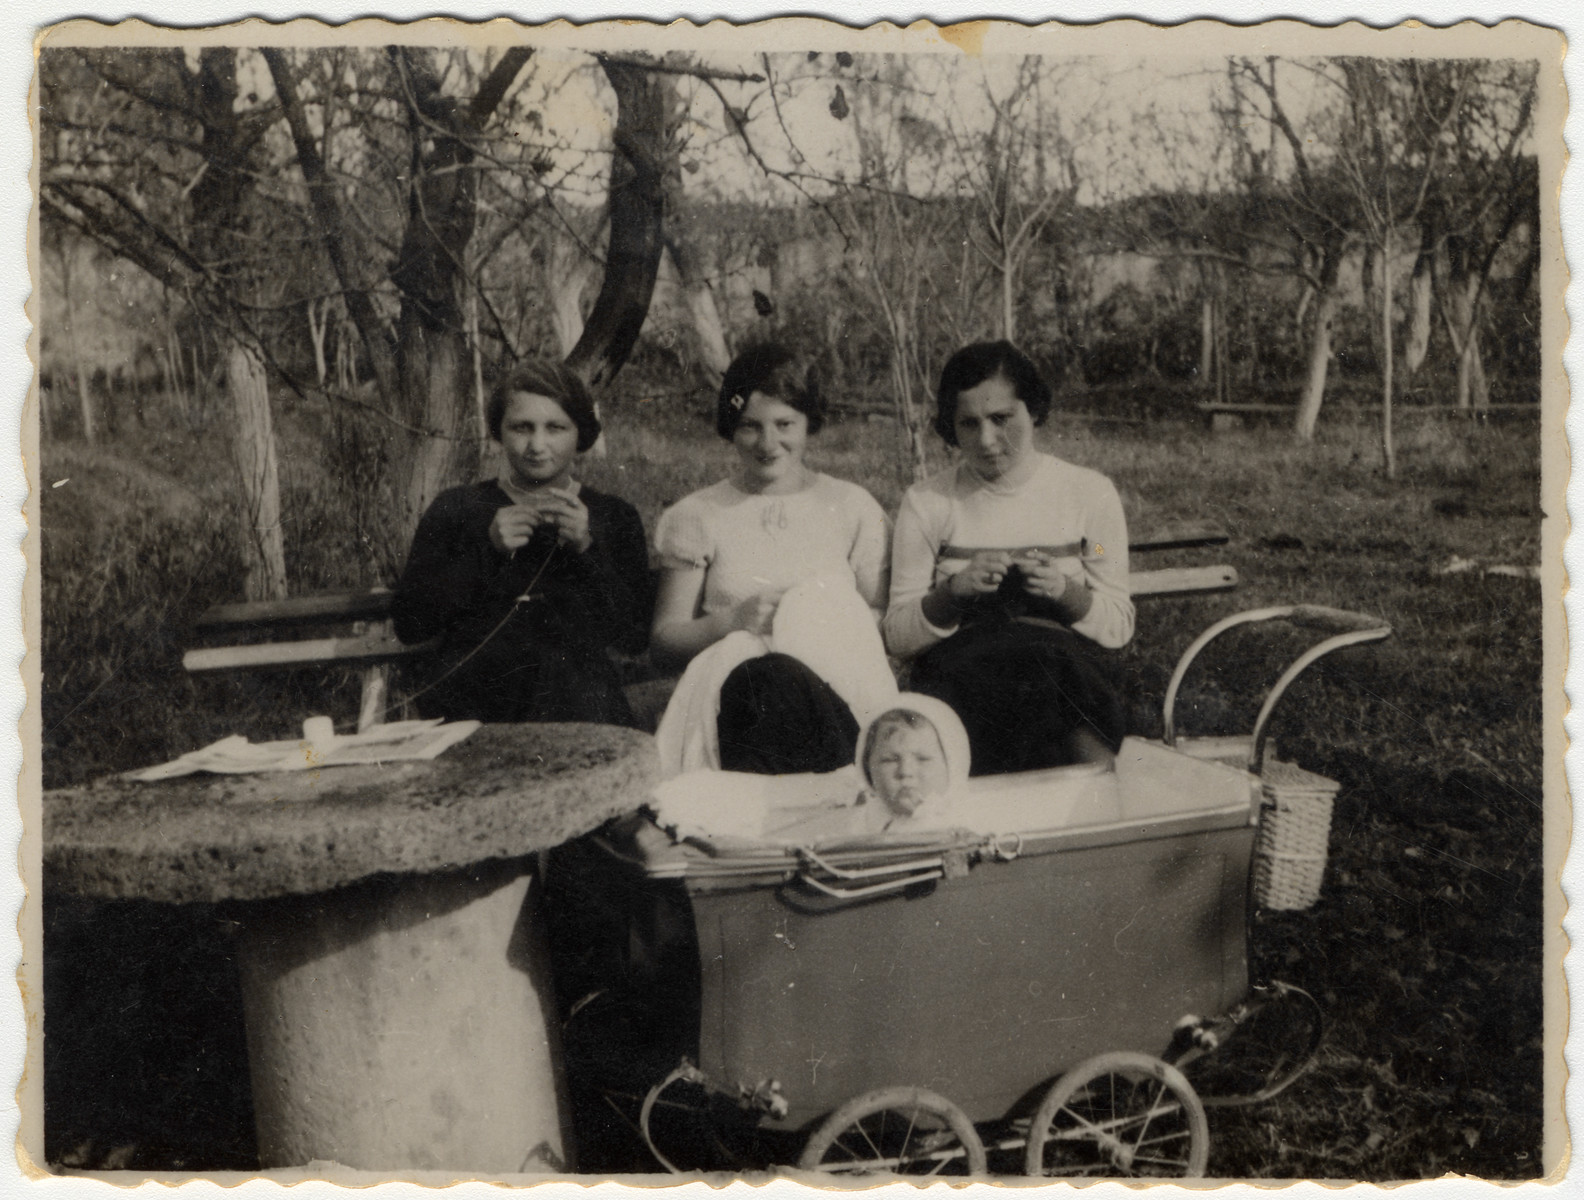 Olga Litman (middle) sits on a park bench and knits while watching her baby Halina sitting in a carriage.